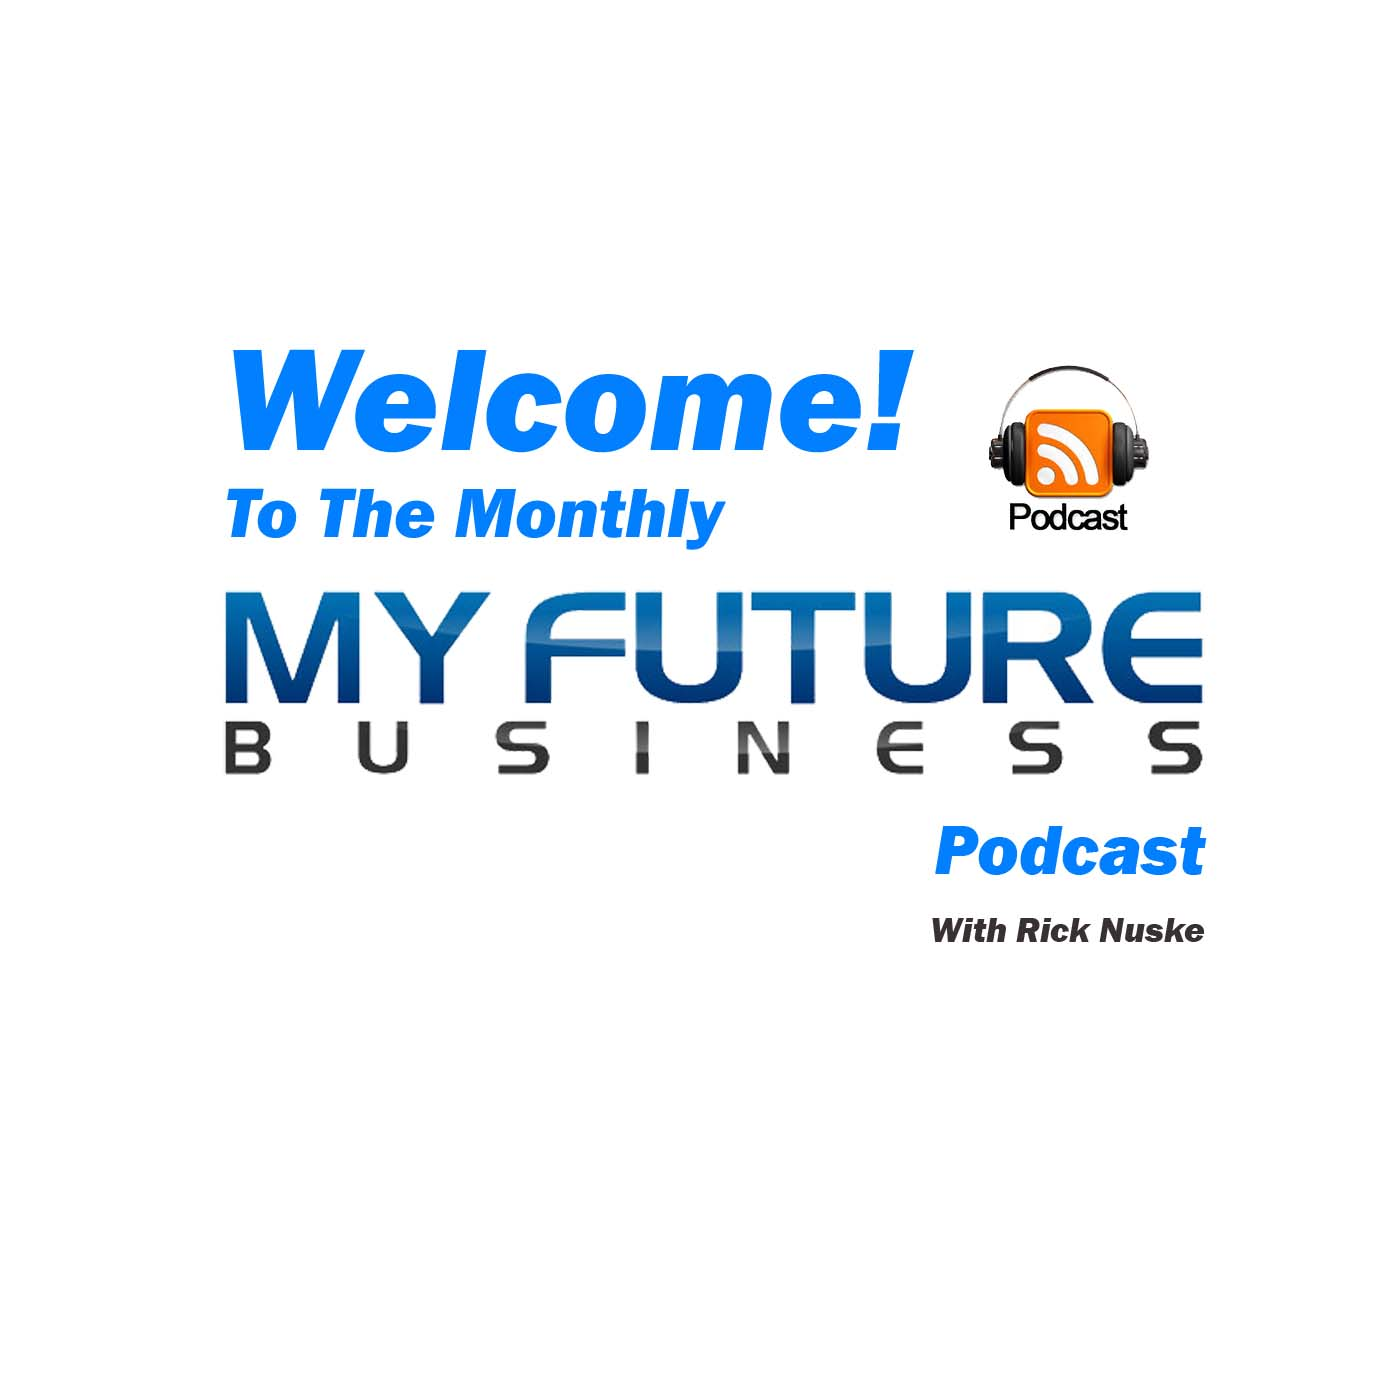 My Future Business Podcast